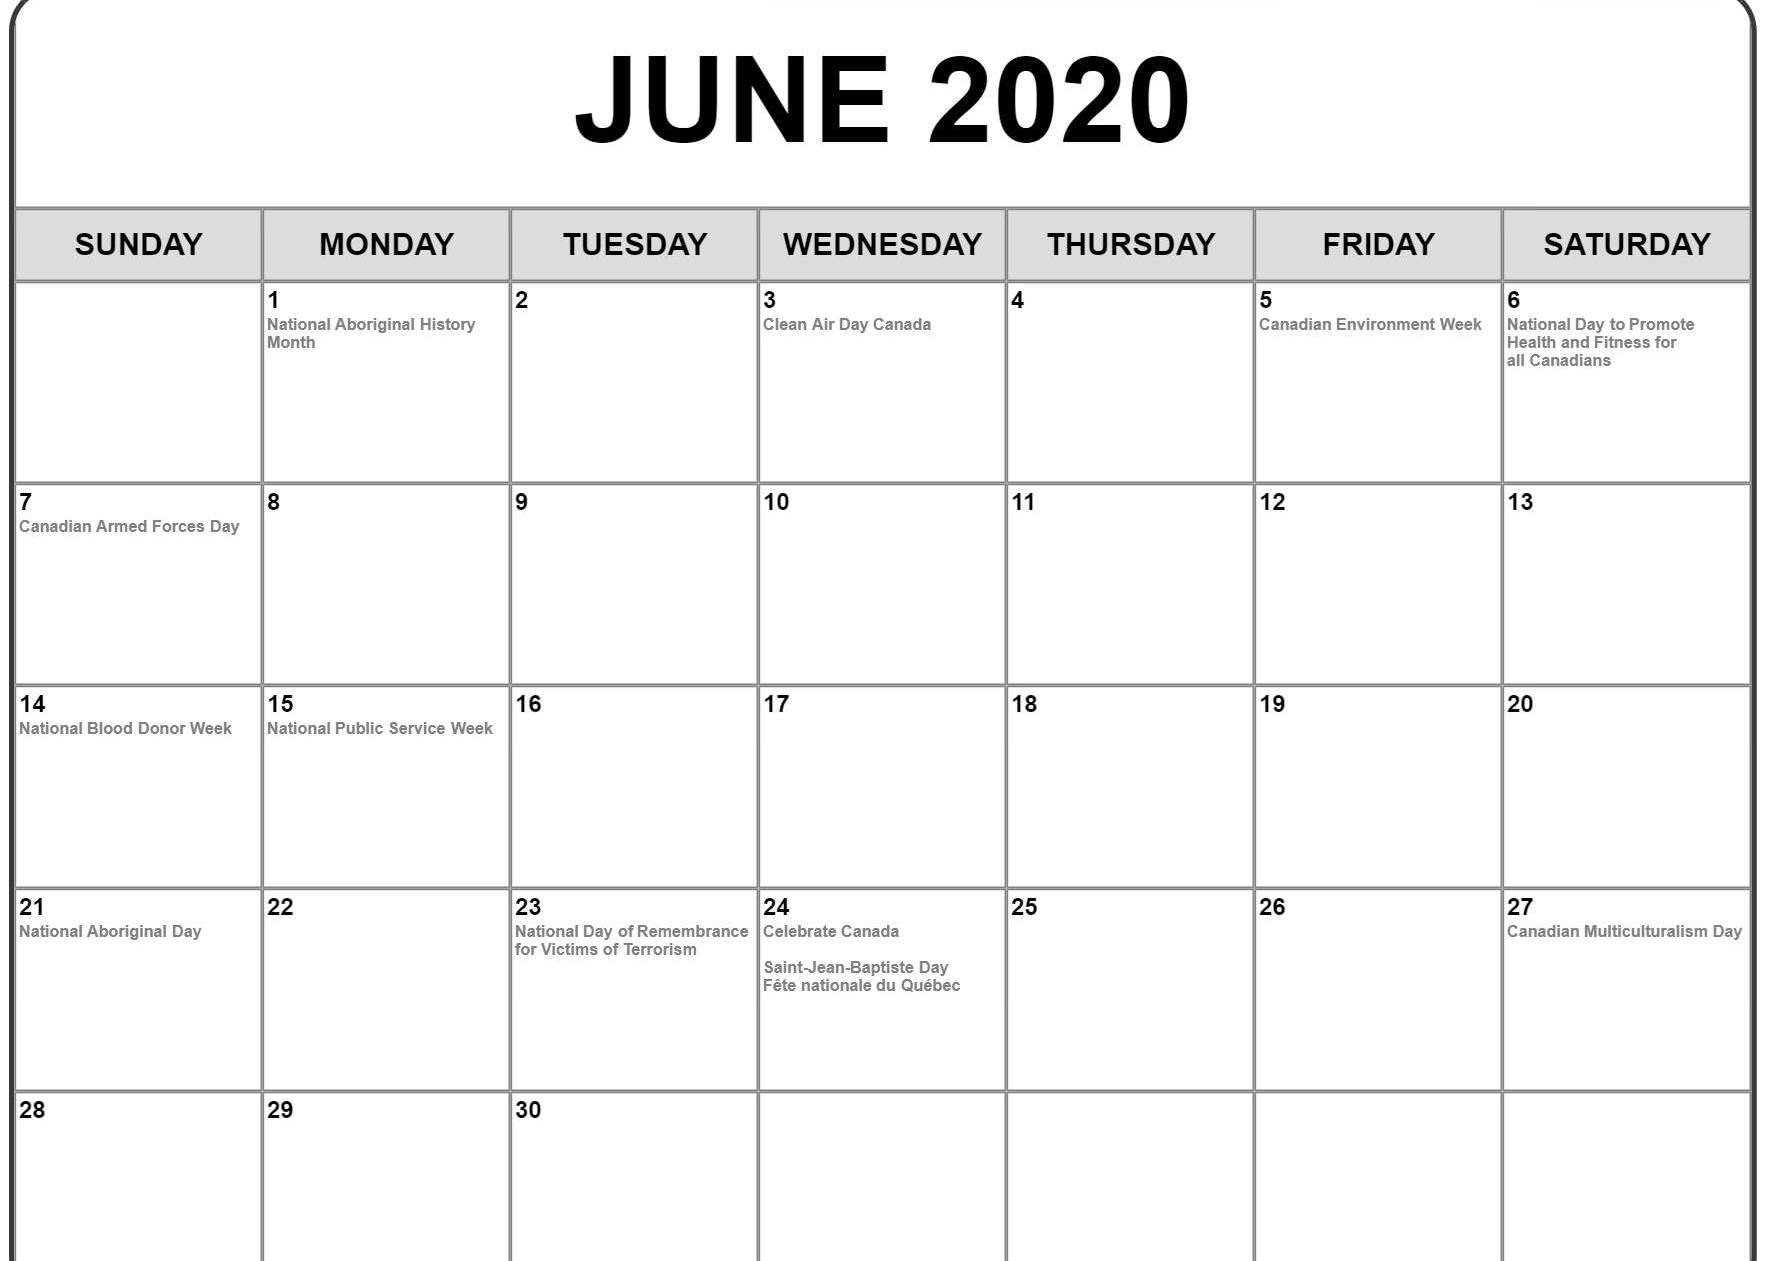 June 2019 To June 2020 Calendar Printable.June 2020 Calendar Pdf Word Excel Template